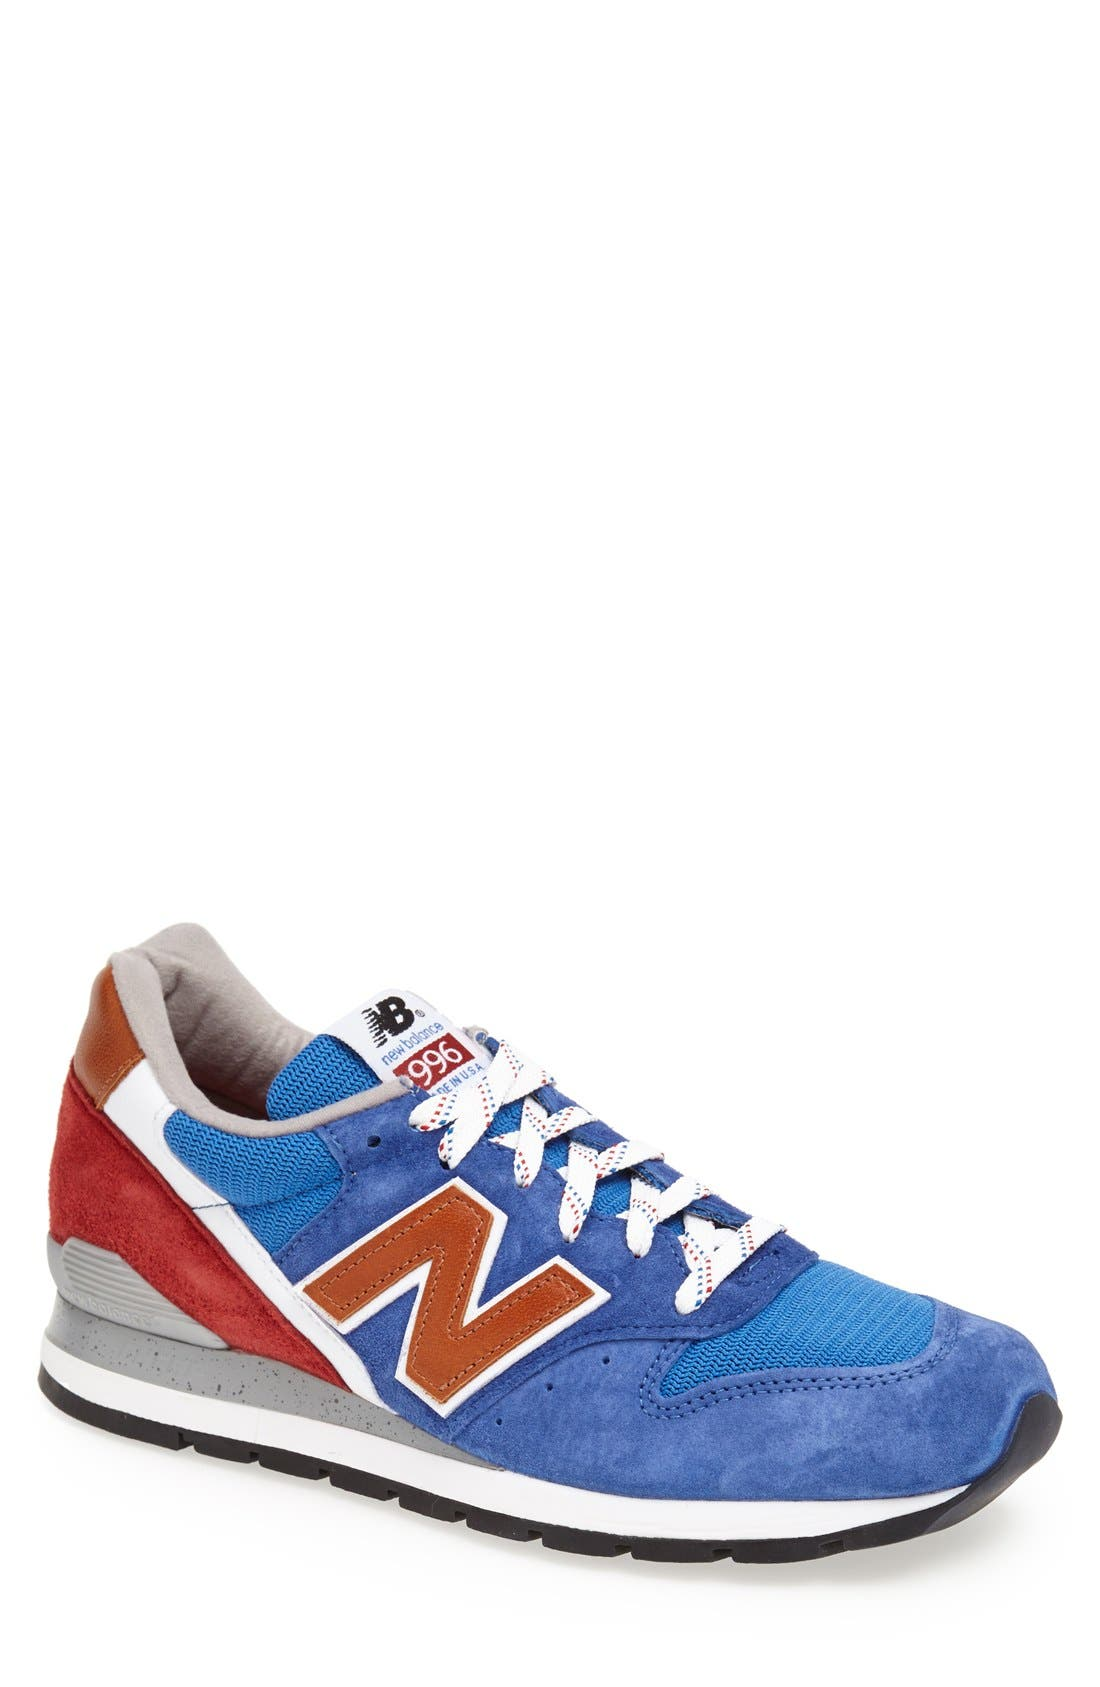 '996' Sneaker,                         Main,                         color, Blue/Red